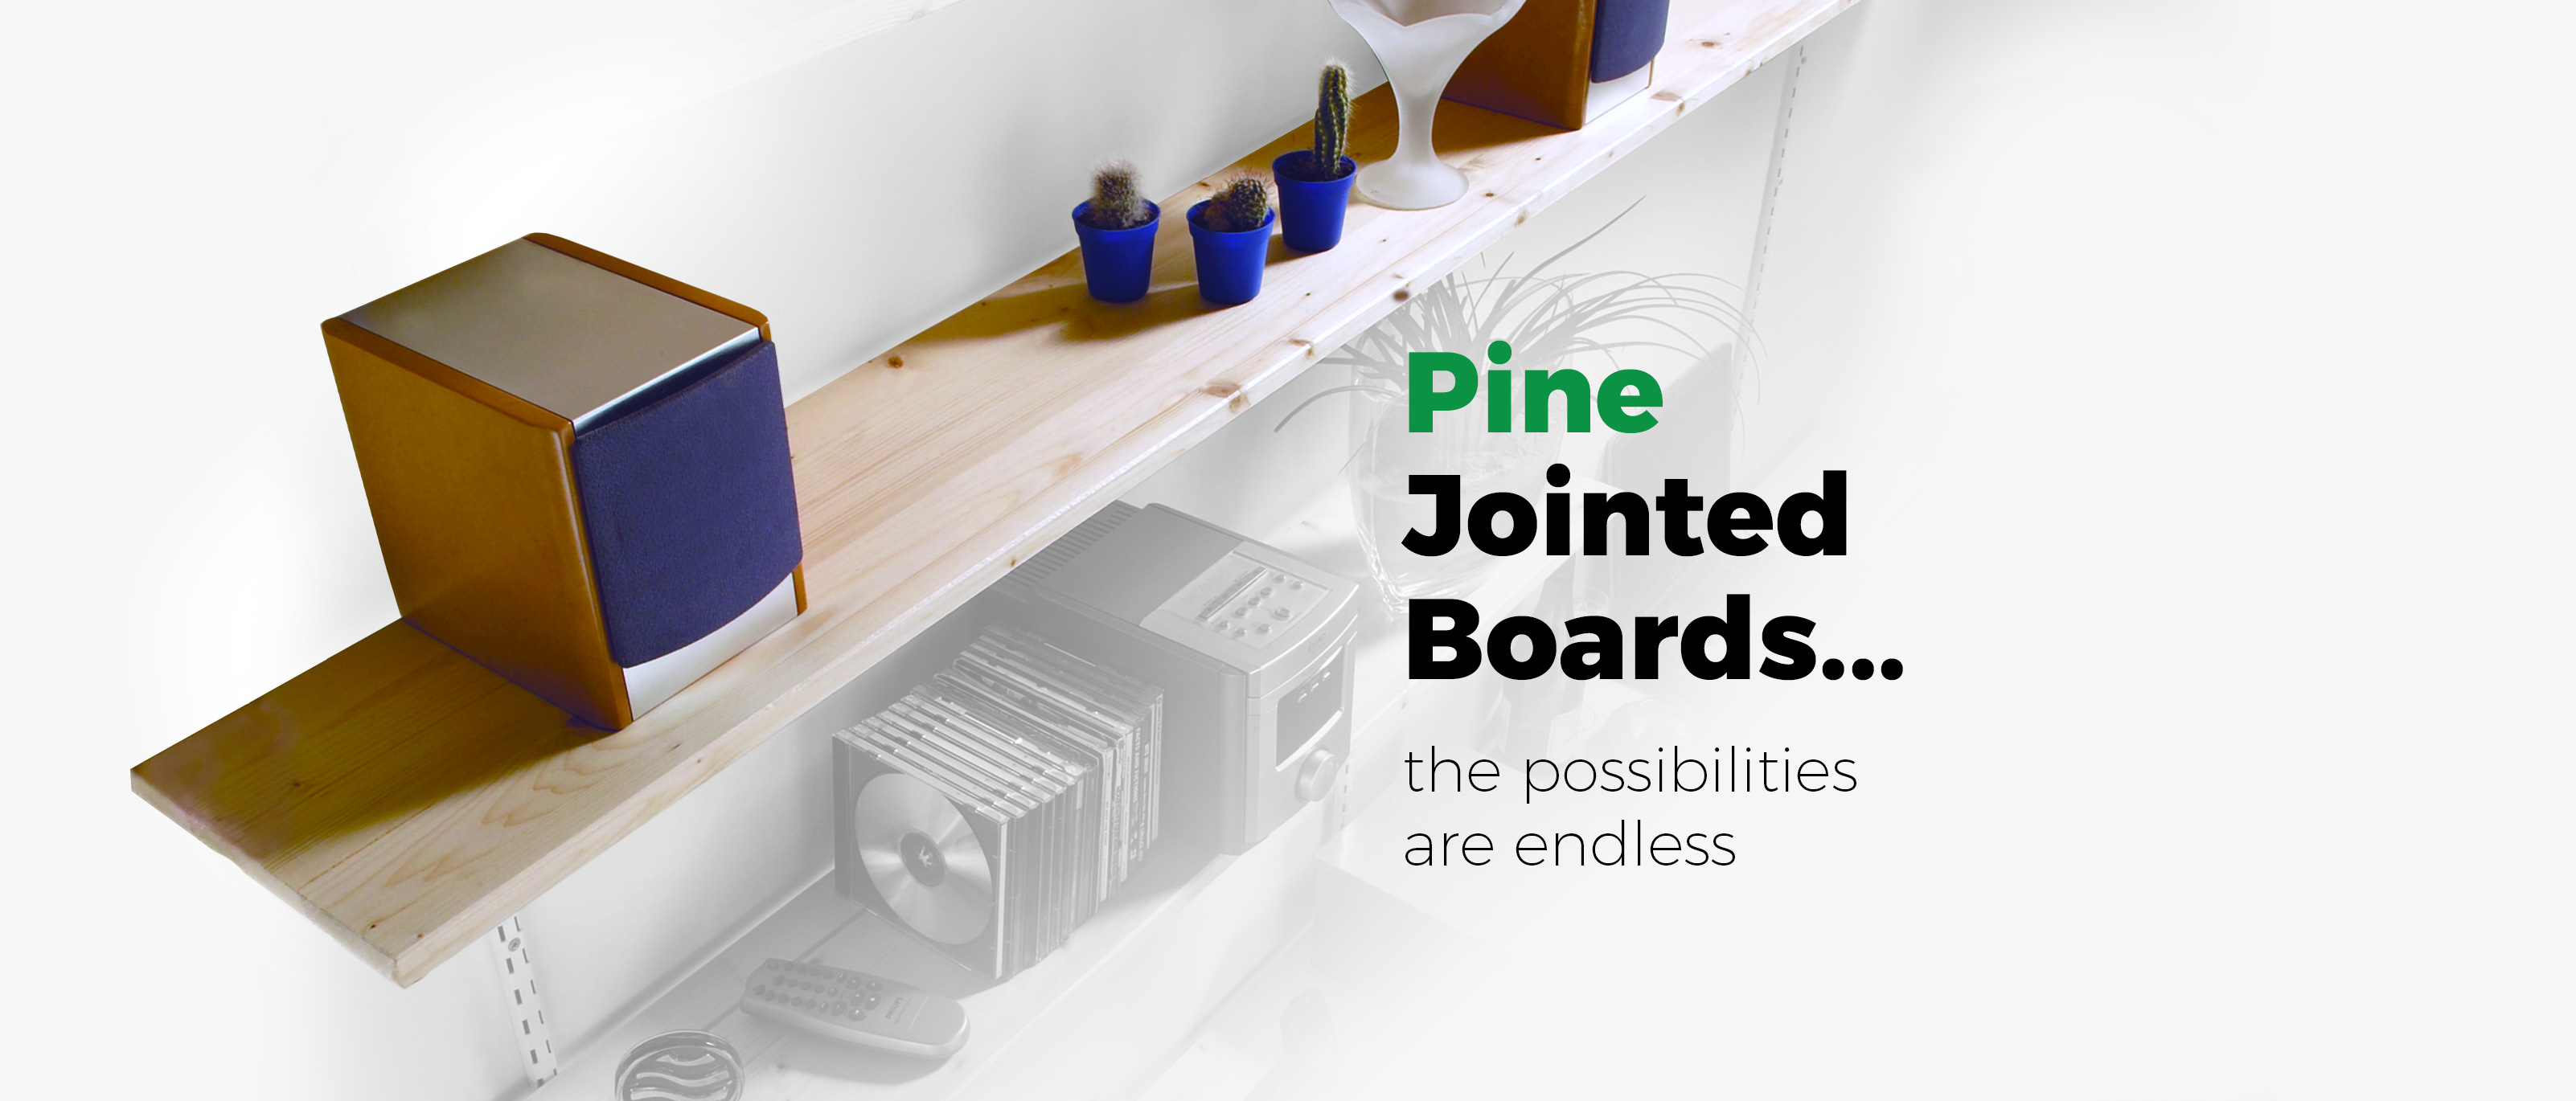 Pine jointed boards... the endless possibilities from JAS Timber